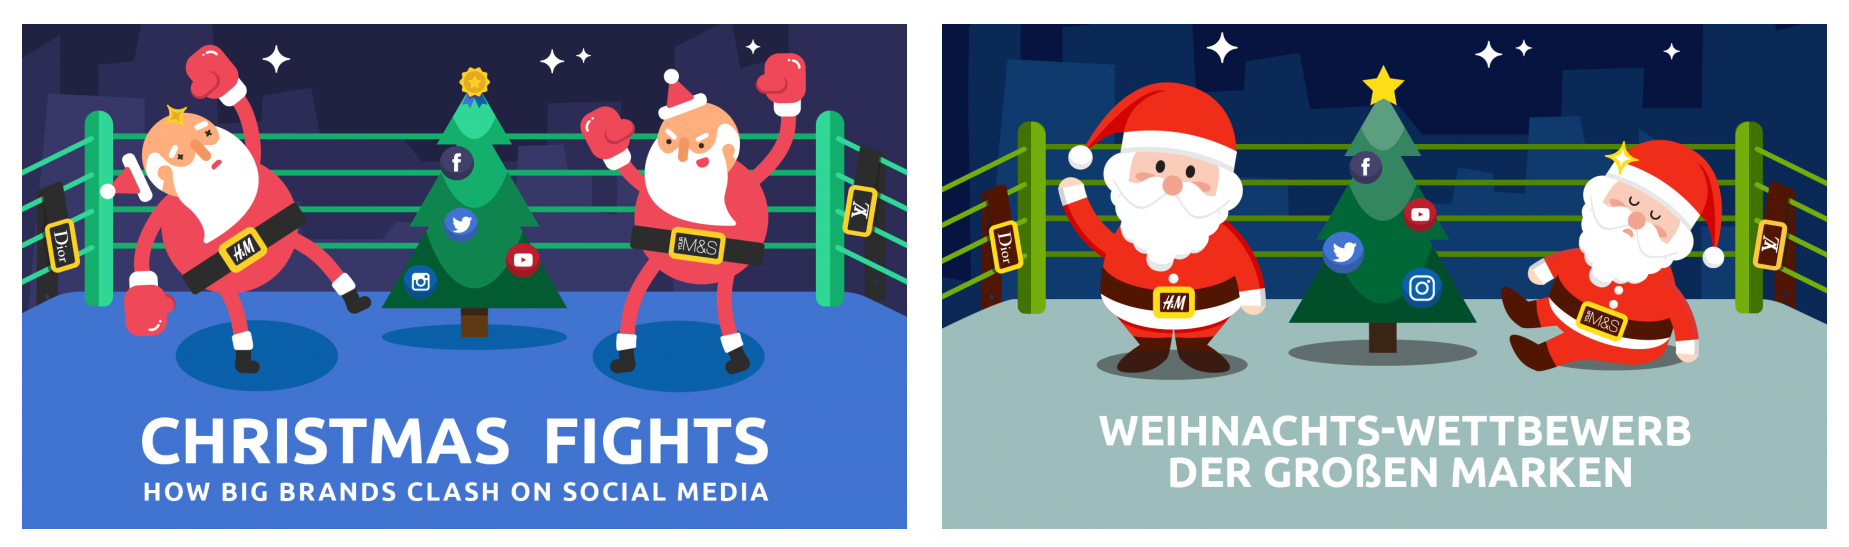 Xmas fights semrush